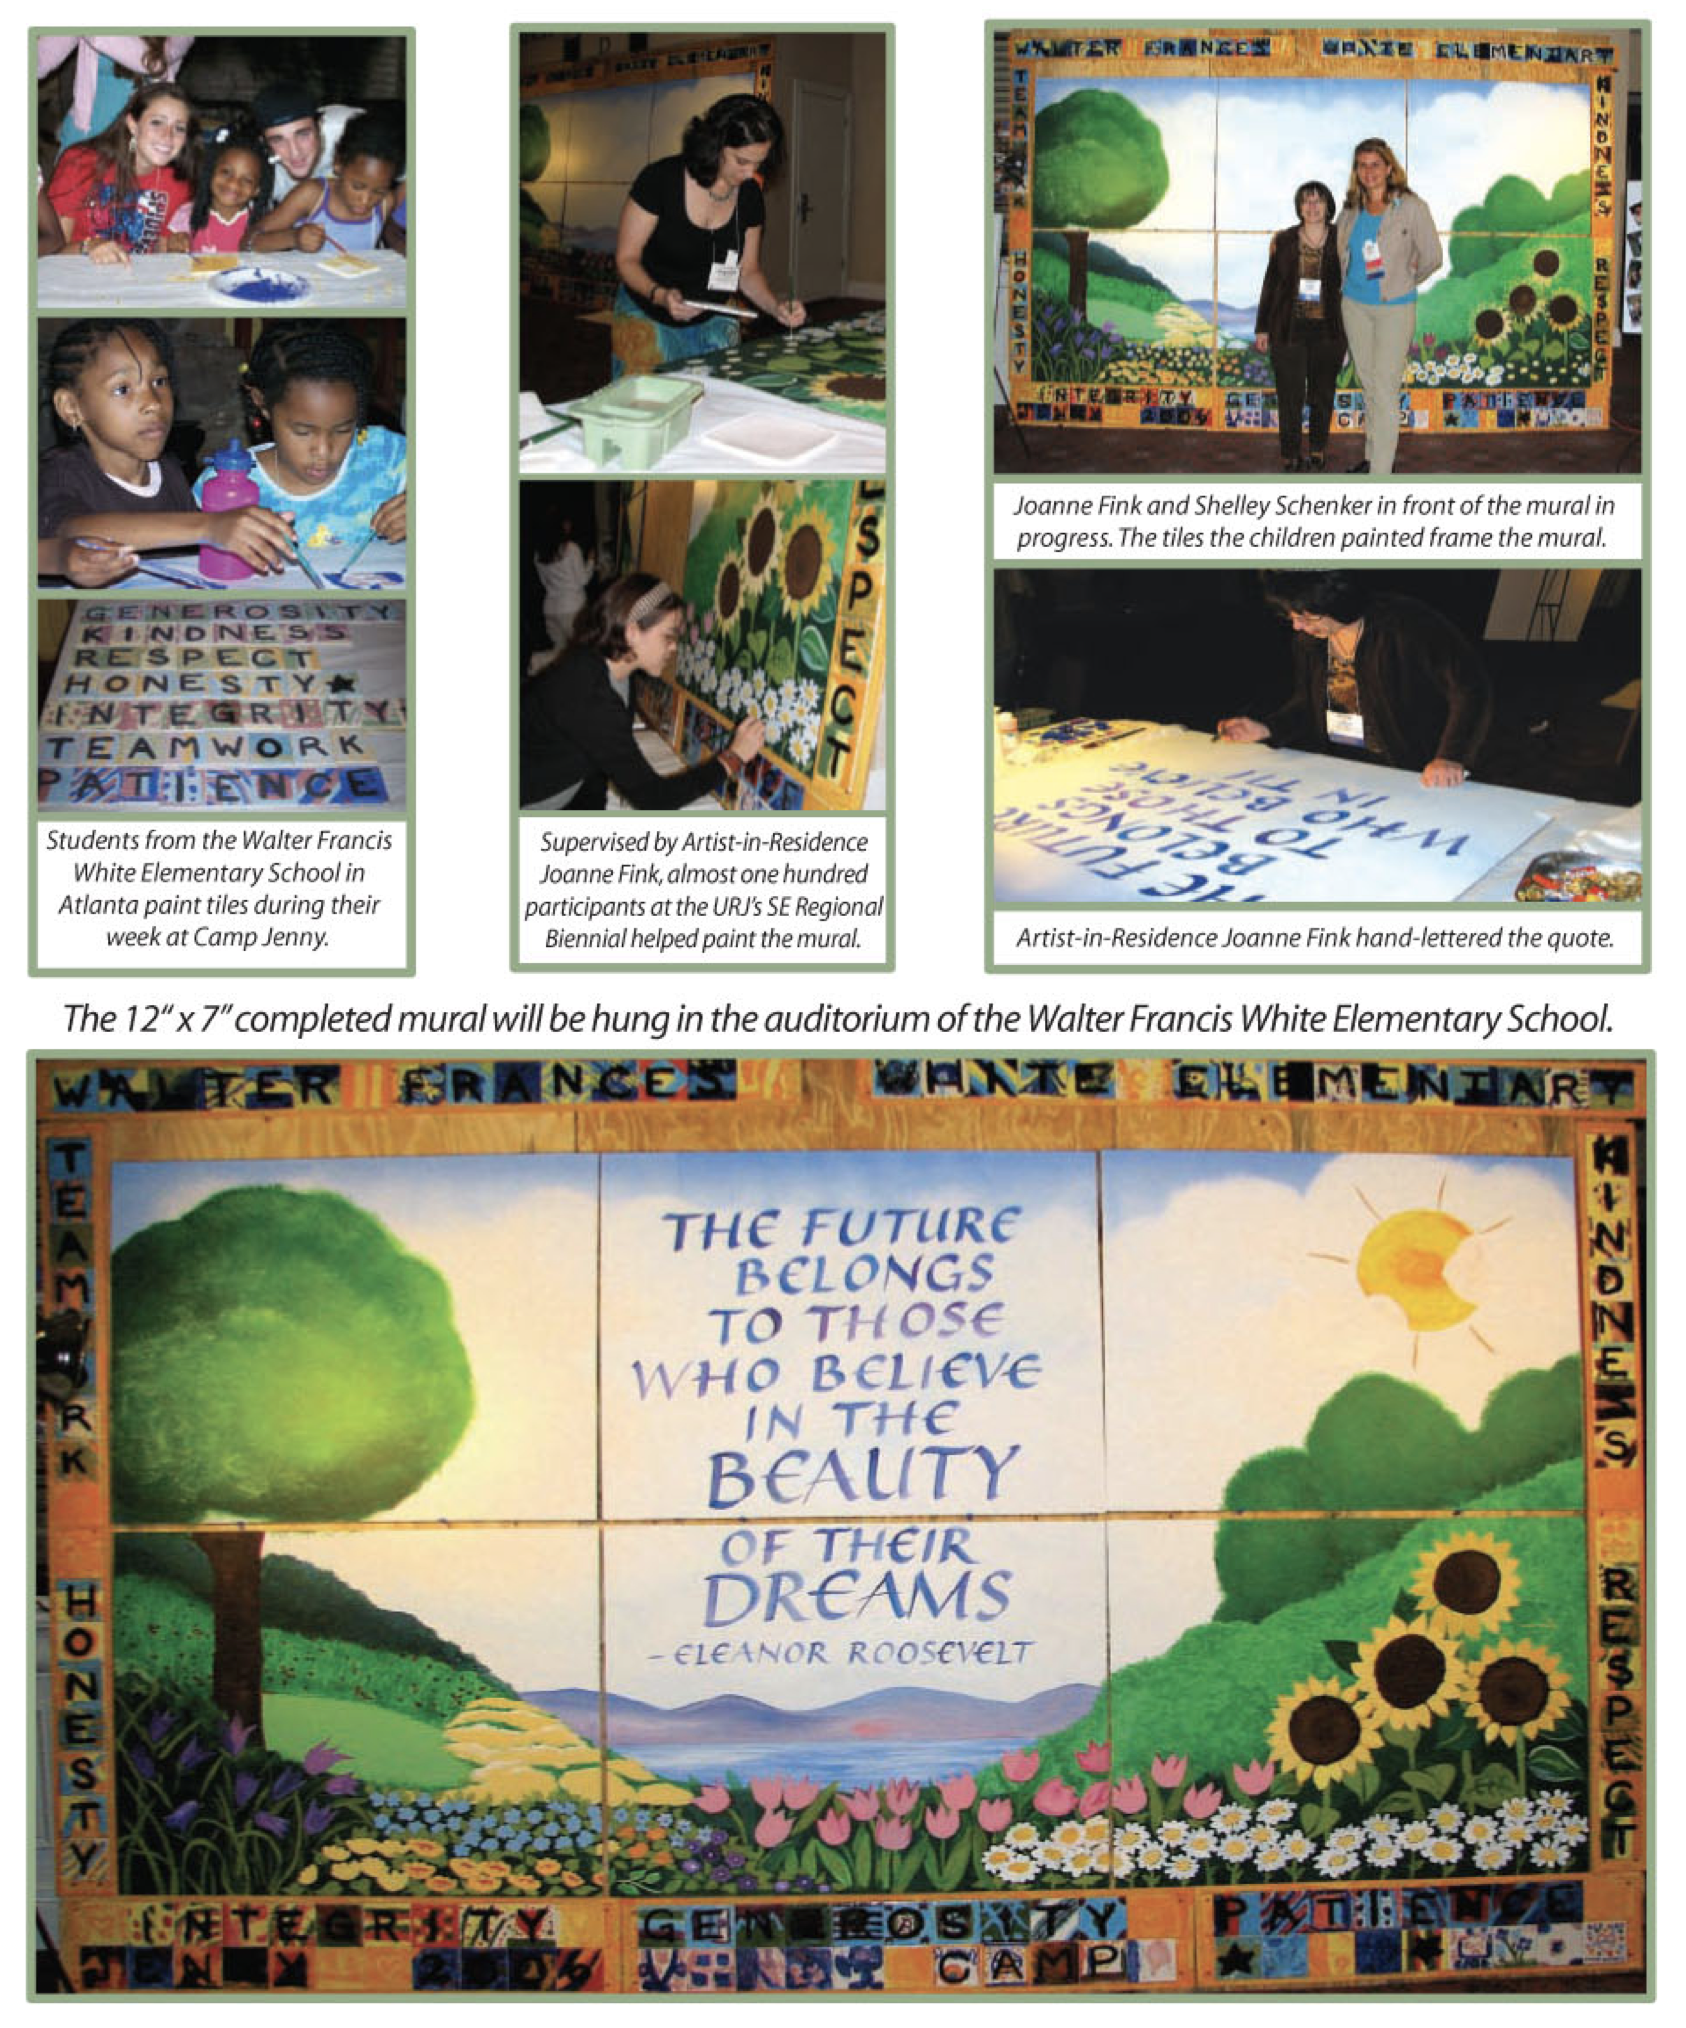 zenspirations_by_joanne_fink_school_mural